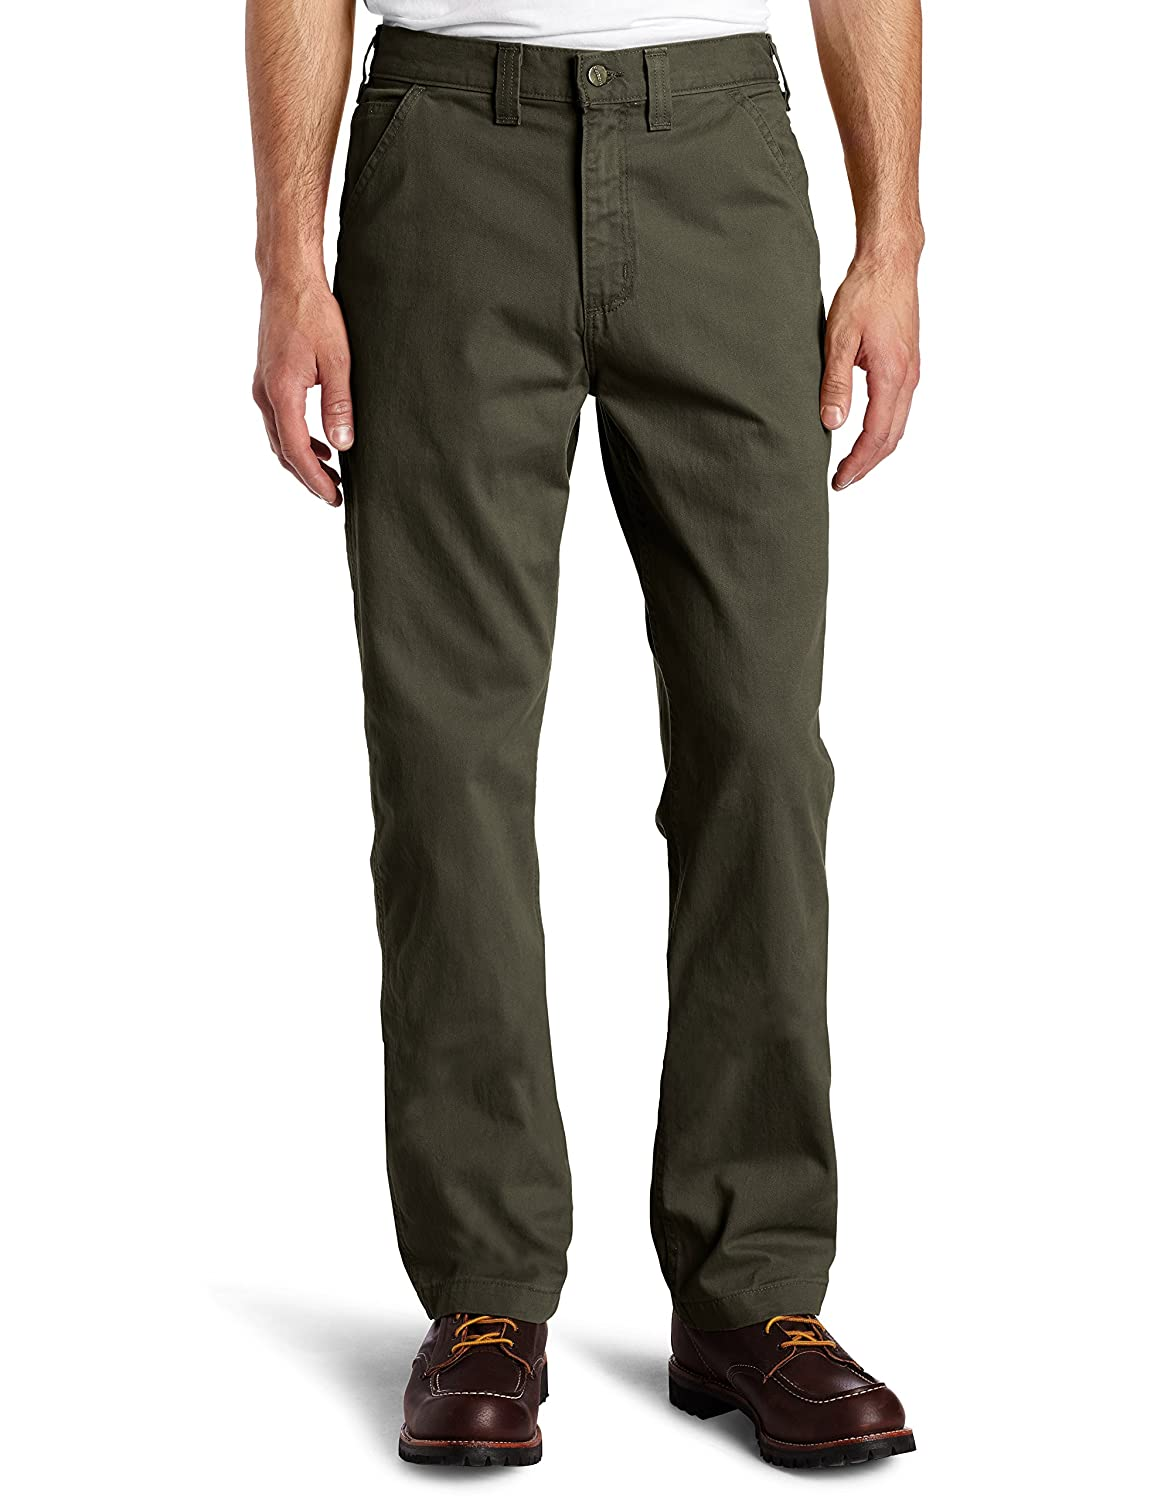 Carhartt Men's Relaxed-Fit Washed Twill Dungaree Pant Carhartt Sportswear - Mens B324